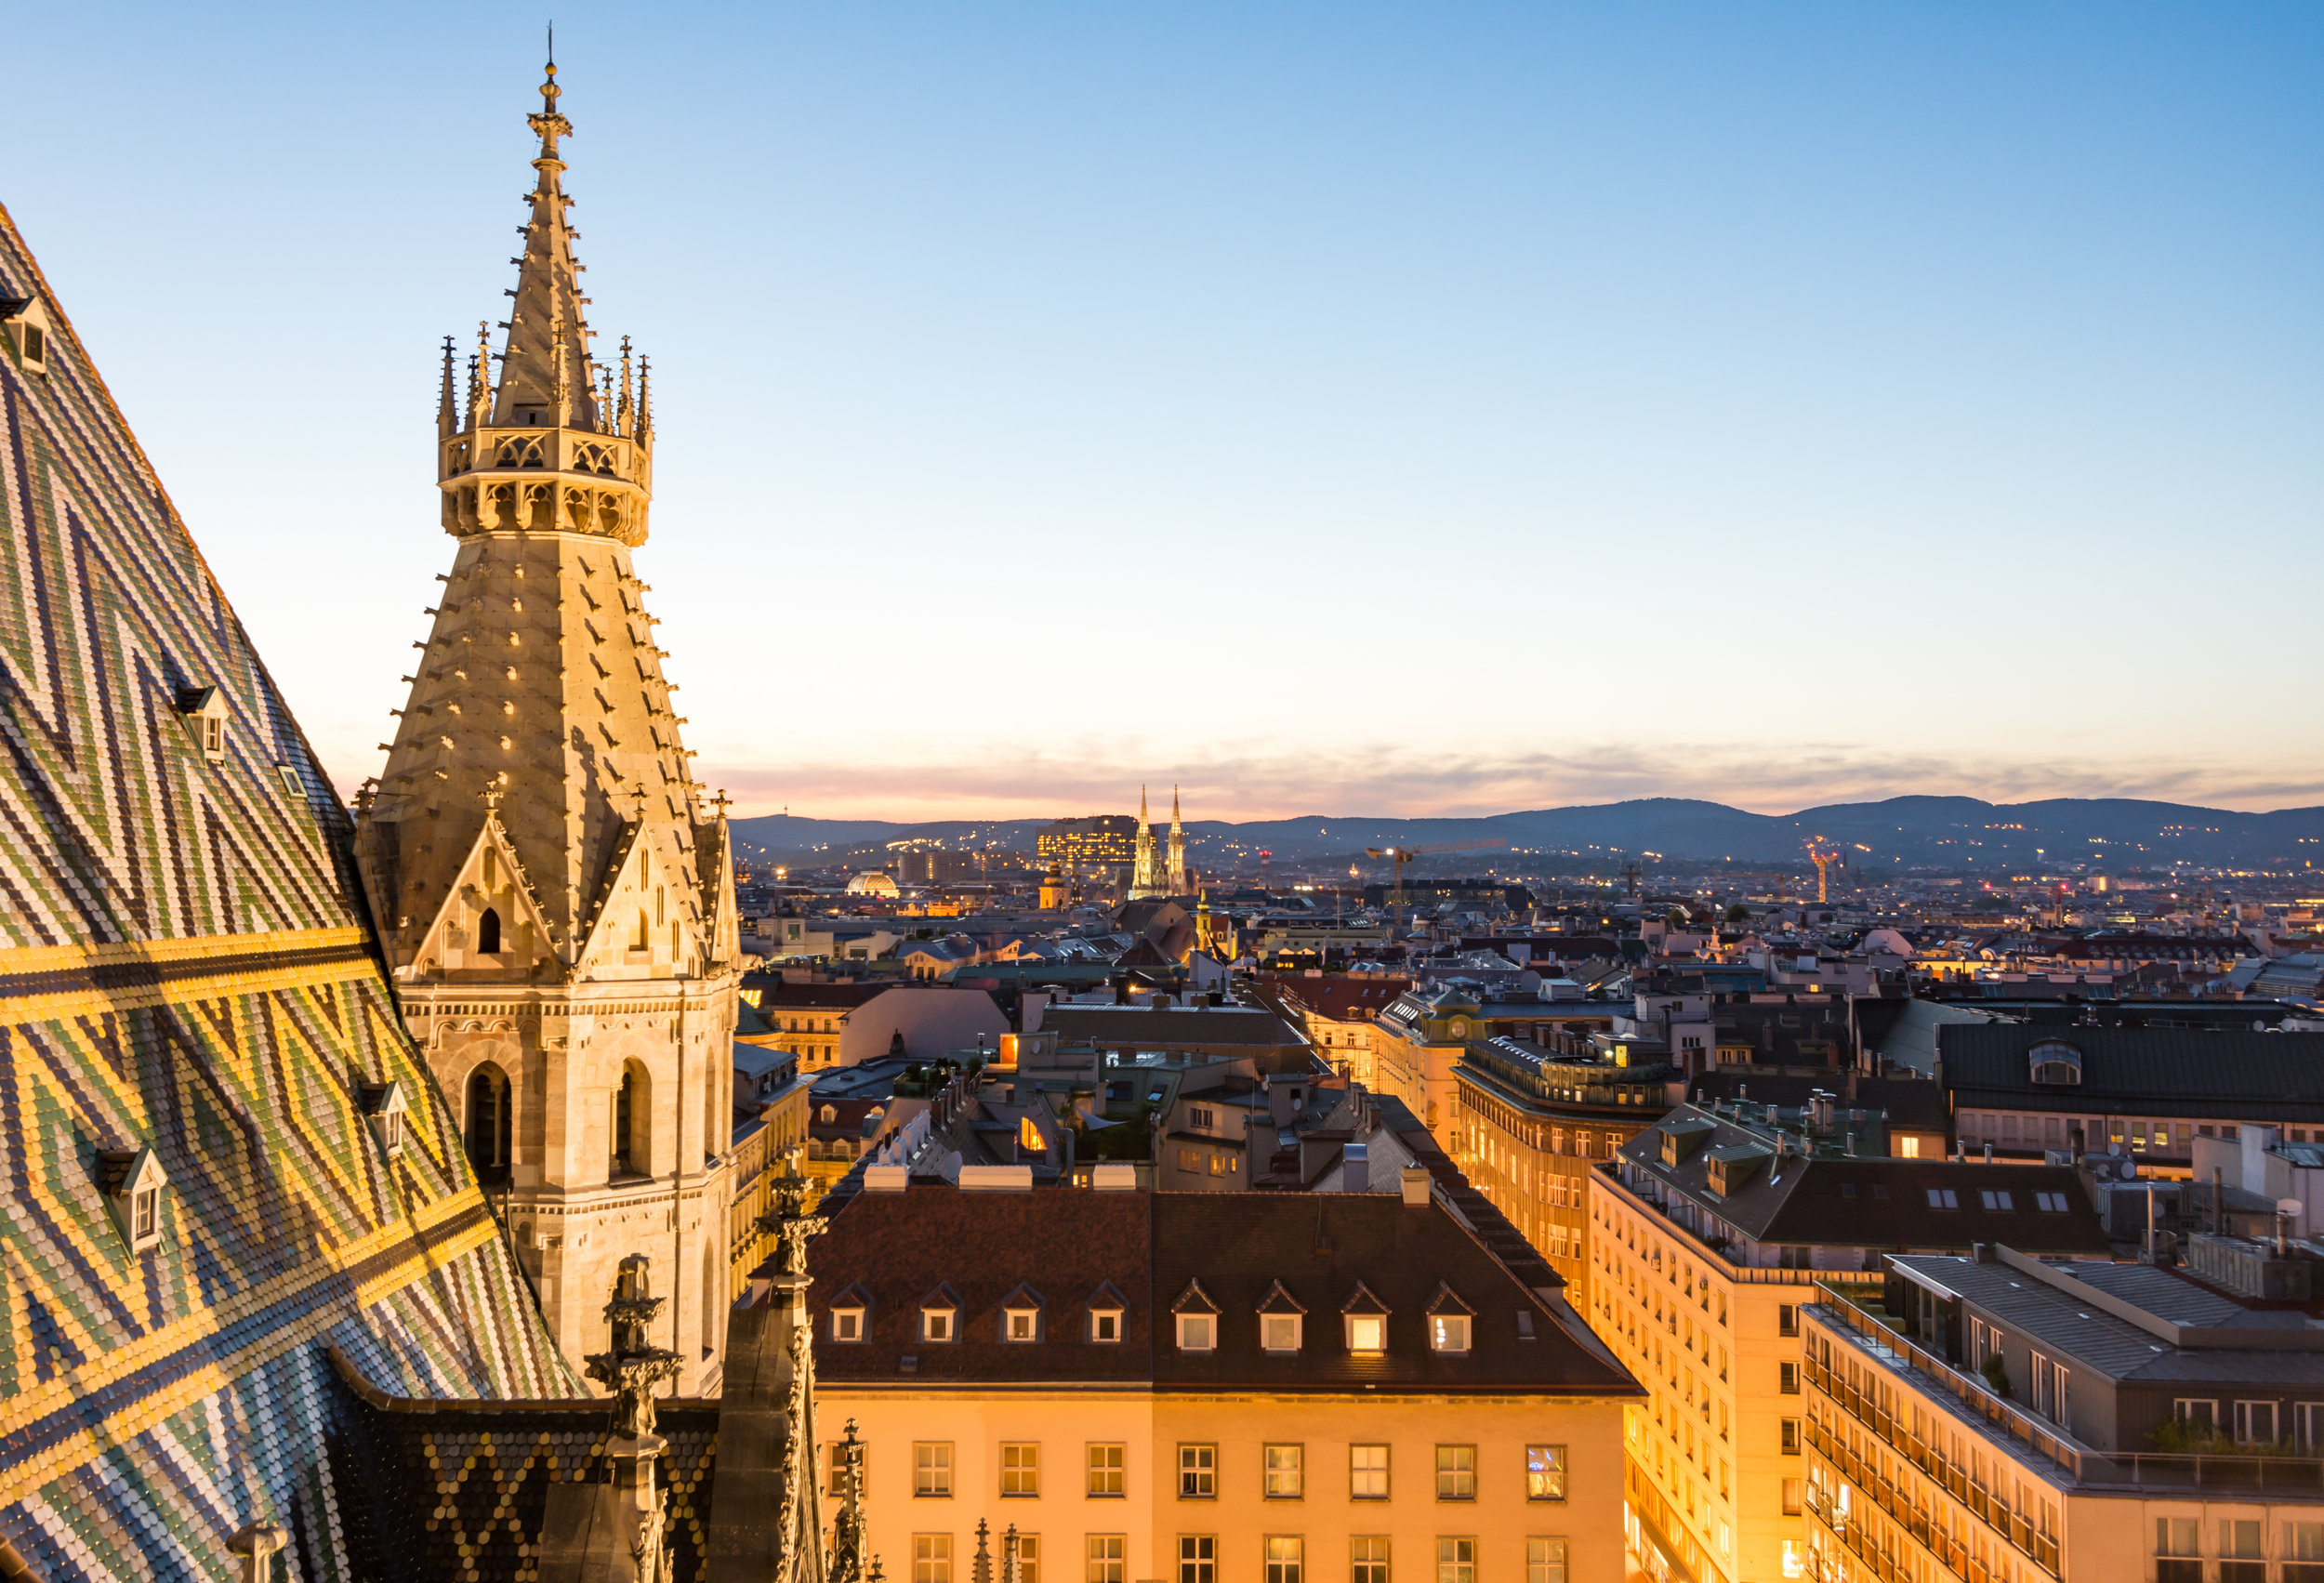 stephansdom-cathedral-and-aerial-view-over-vienna-PAAT6D6.jpg